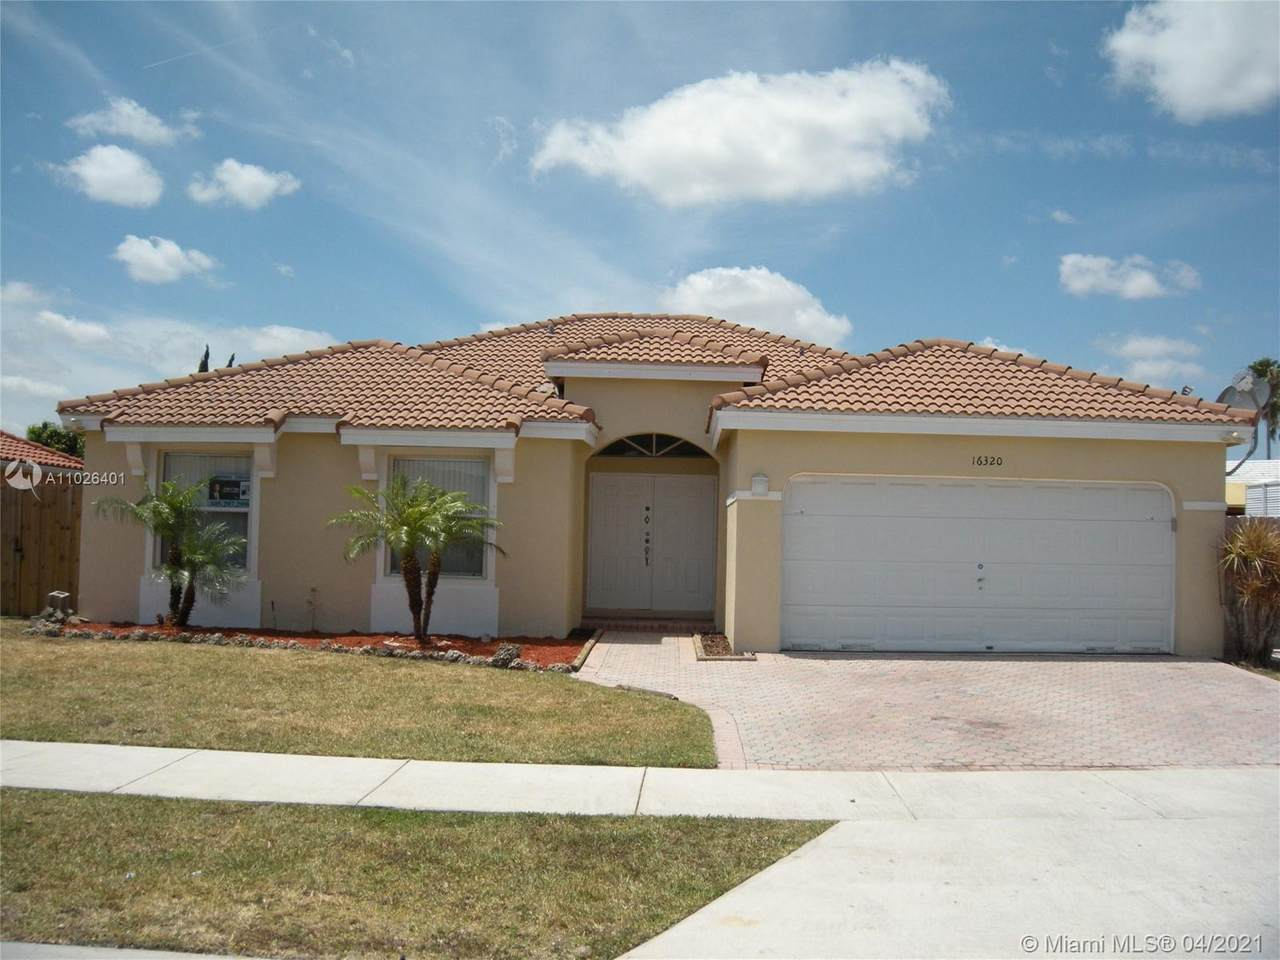 16320 144th Ave - Photo 1